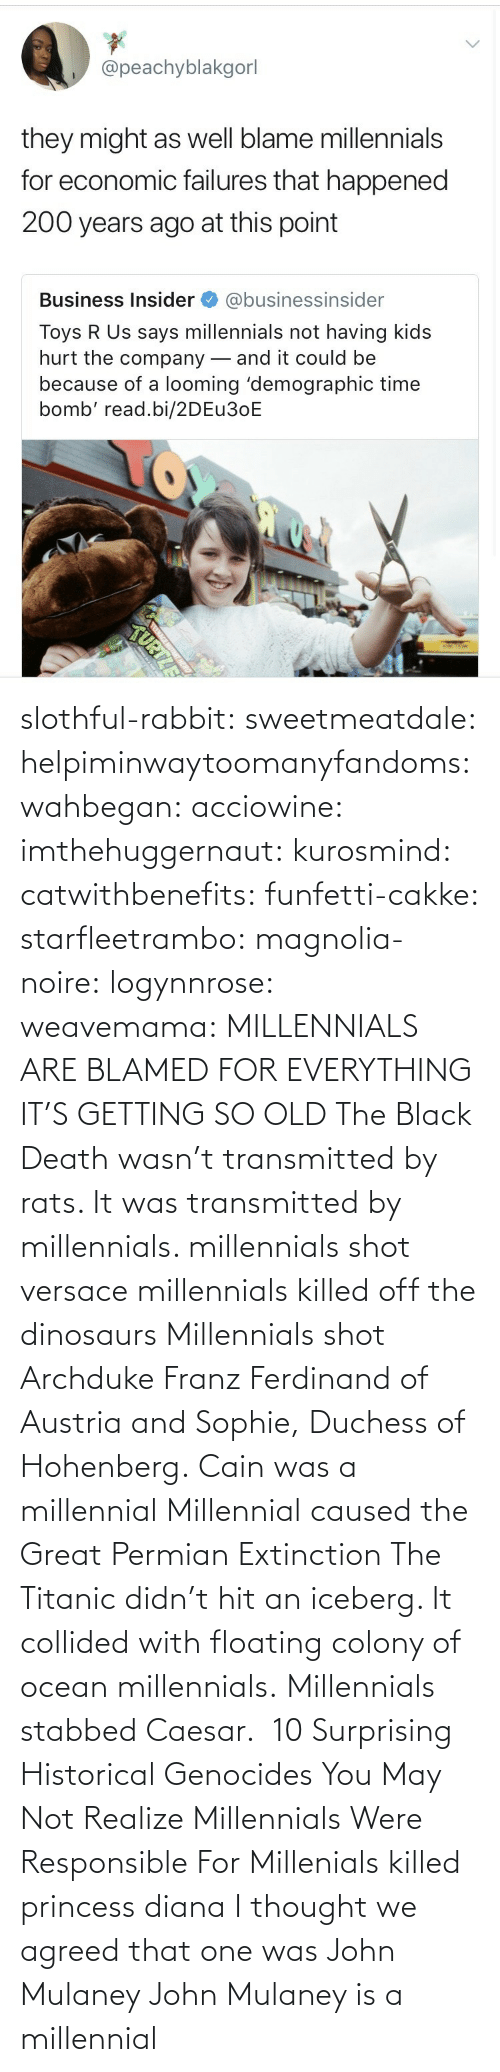 diana: slothful-rabbit: sweetmeatdale:  helpiminwaytoomanyfandoms:   wahbegan:  acciowine:  imthehuggernaut:  kurosmind:   catwithbenefits:  funfetti-cakke:  starfleetrambo:  magnolia-noire:  logynnrose:  weavemama:  MILLENNIALS ARE BLAMED FOR EVERYTHING IT'S GETTING SO OLD  The Black Death wasn't transmitted by rats. It was transmitted by millennials.    millennials shot versace   millennials killed off the dinosaurs    Millennials shot Archduke Franz Ferdinand of Austria and Sophie, Duchess of Hohenberg.   Cain was a millennial  Millennial caused the Great Permian Extinction   The Titanic didn't hit an iceberg. It collided with floating colony of ocean millennials.  Millennials stabbed Caesar.   10 Surprising Historical Genocides You May Not Realize Millennials Were Responsible For    Millenials killed princess diana    I thought we agreed that one was John Mulaney     John Mulaney is a millennial